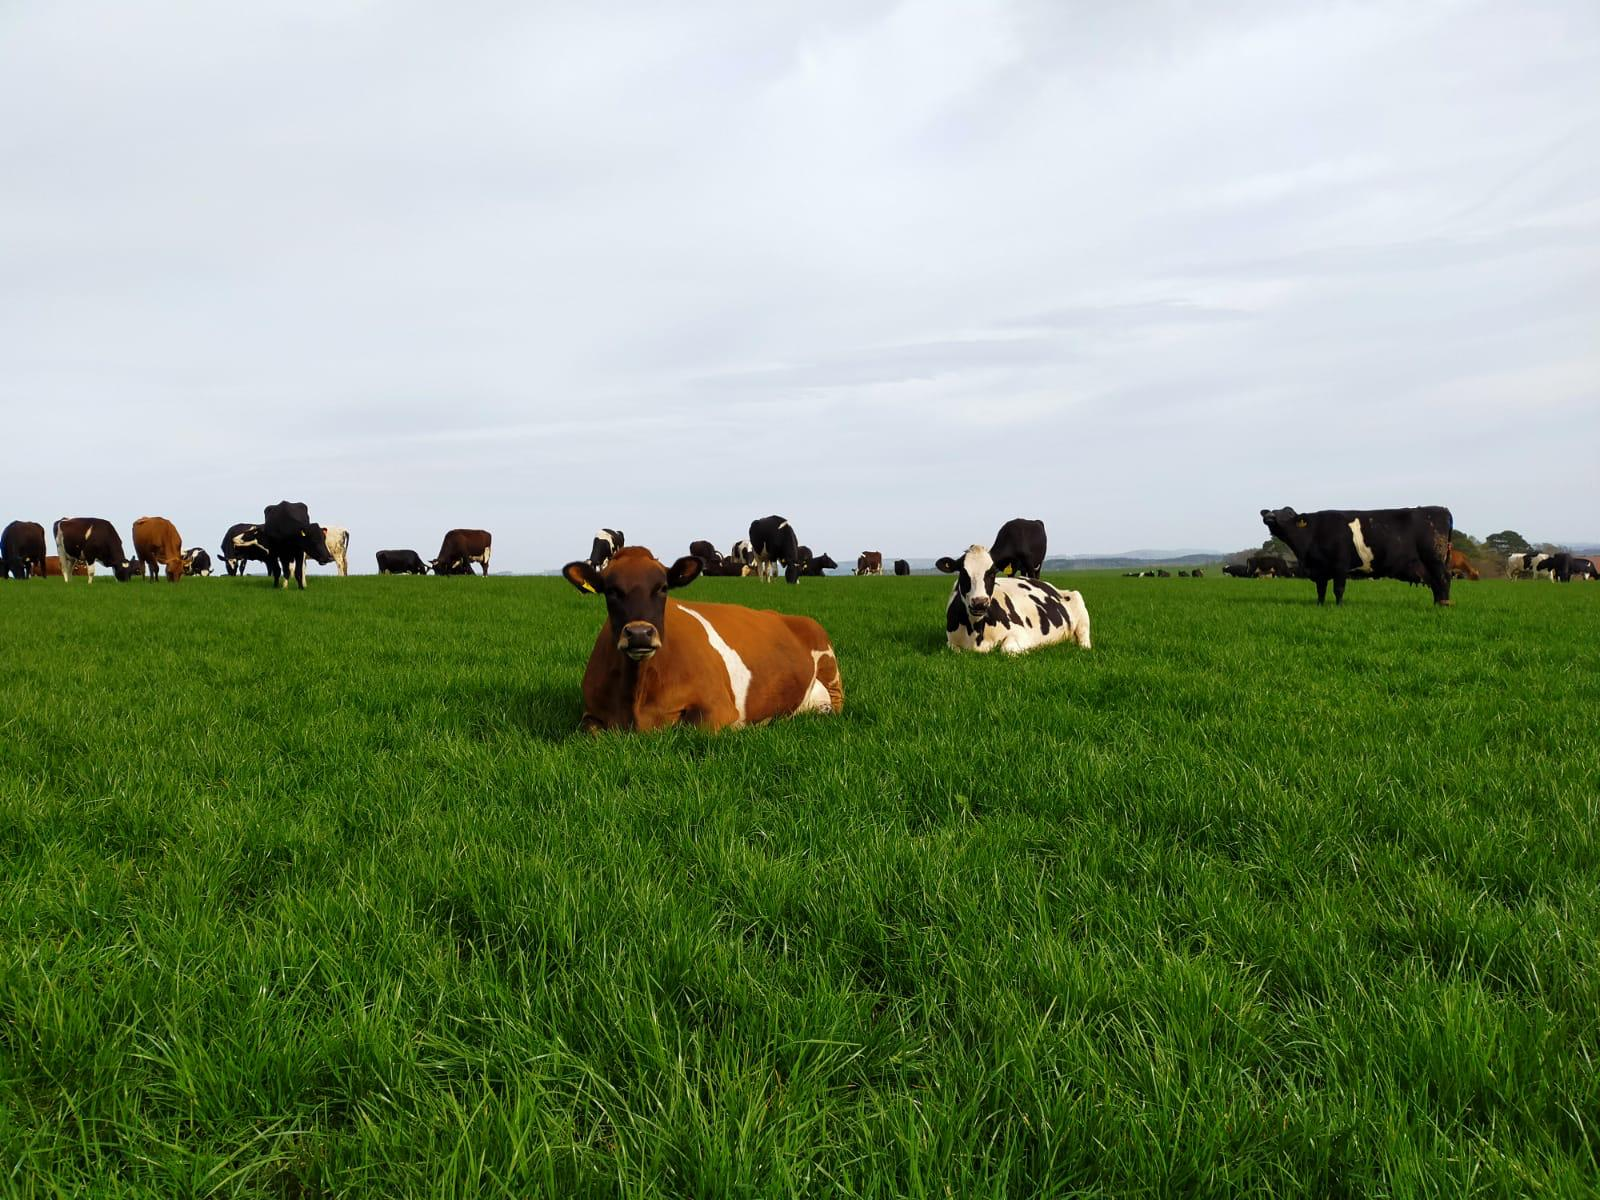 cows laying in a field